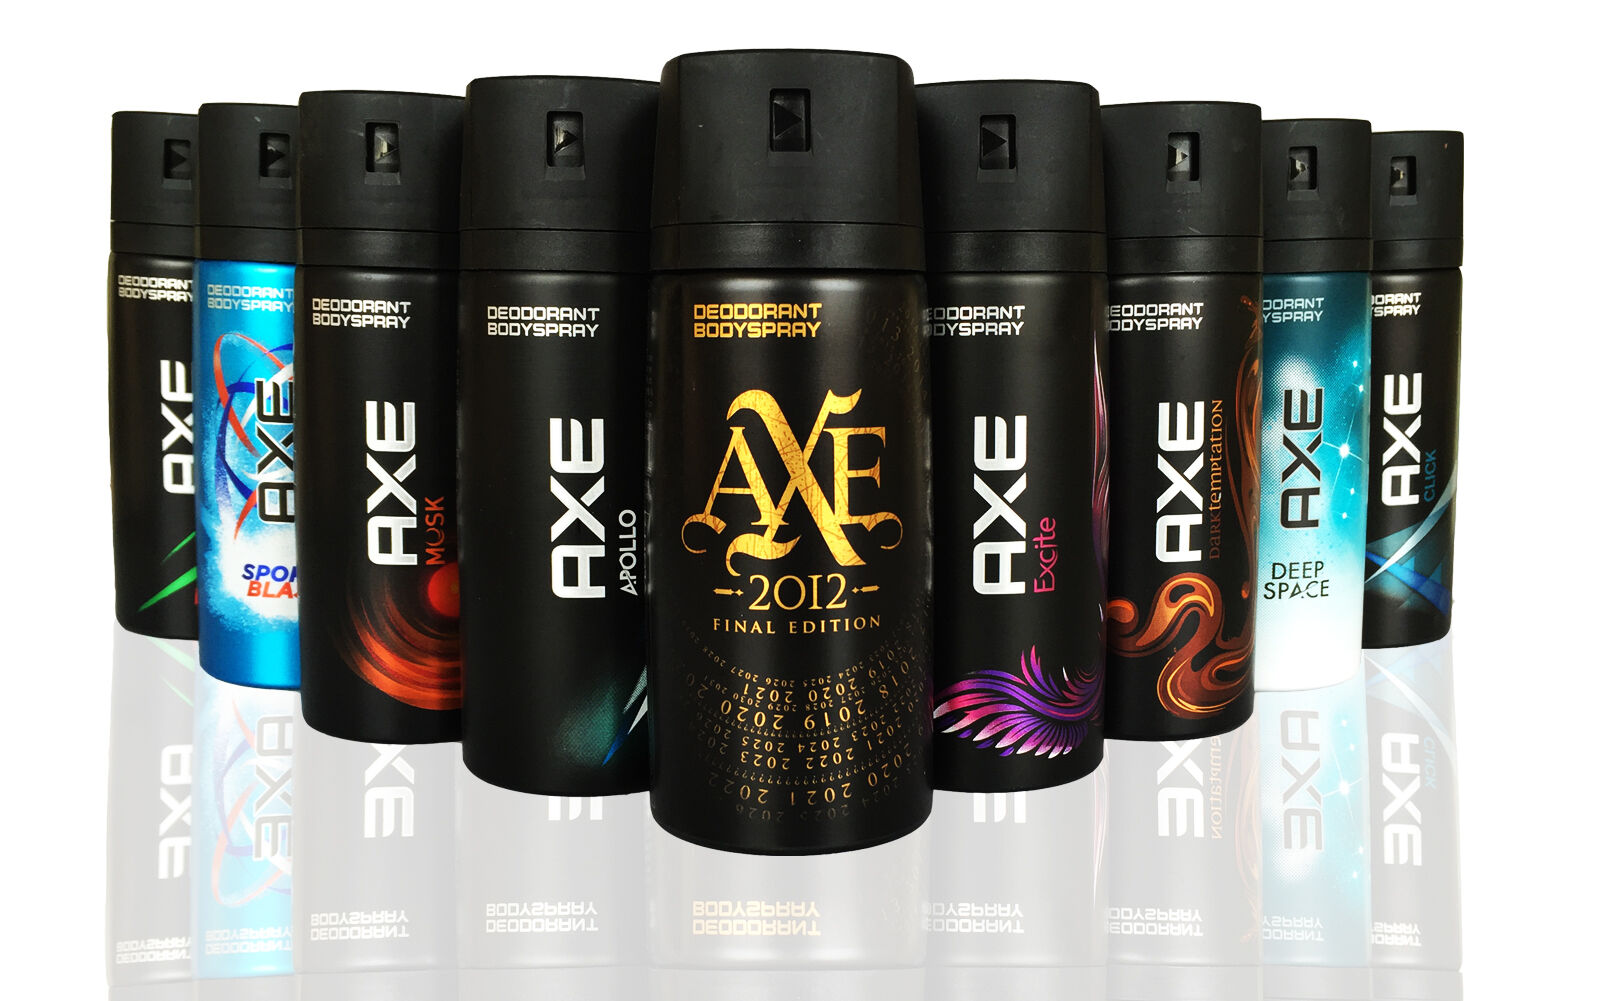 axe cologne By paloma aleman axe body spray is known for its overly sexual ads that center on the objectification of women and the insistence that their products somehow build.